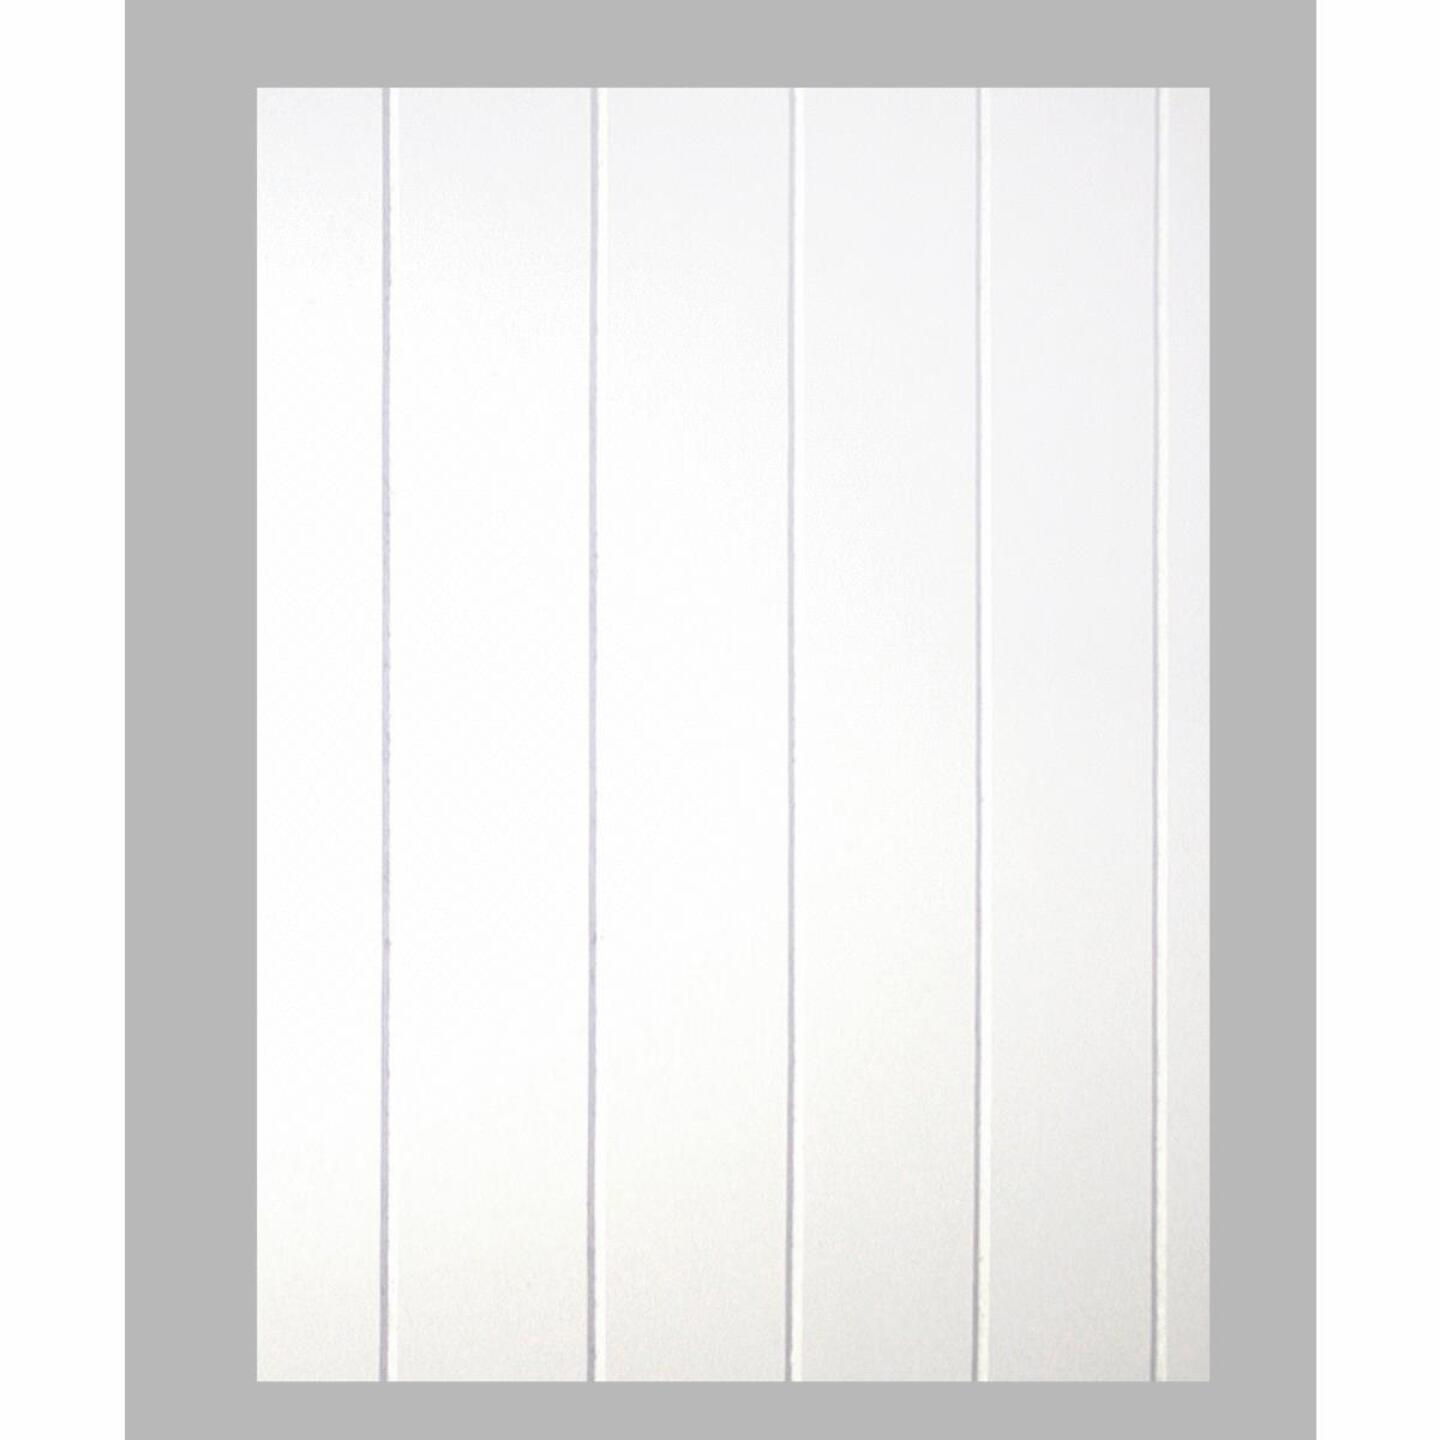 DPI 4 Ft. x 8 Ft. x 3/16 In. White Dover V-Groove Wall Paneling Image 1